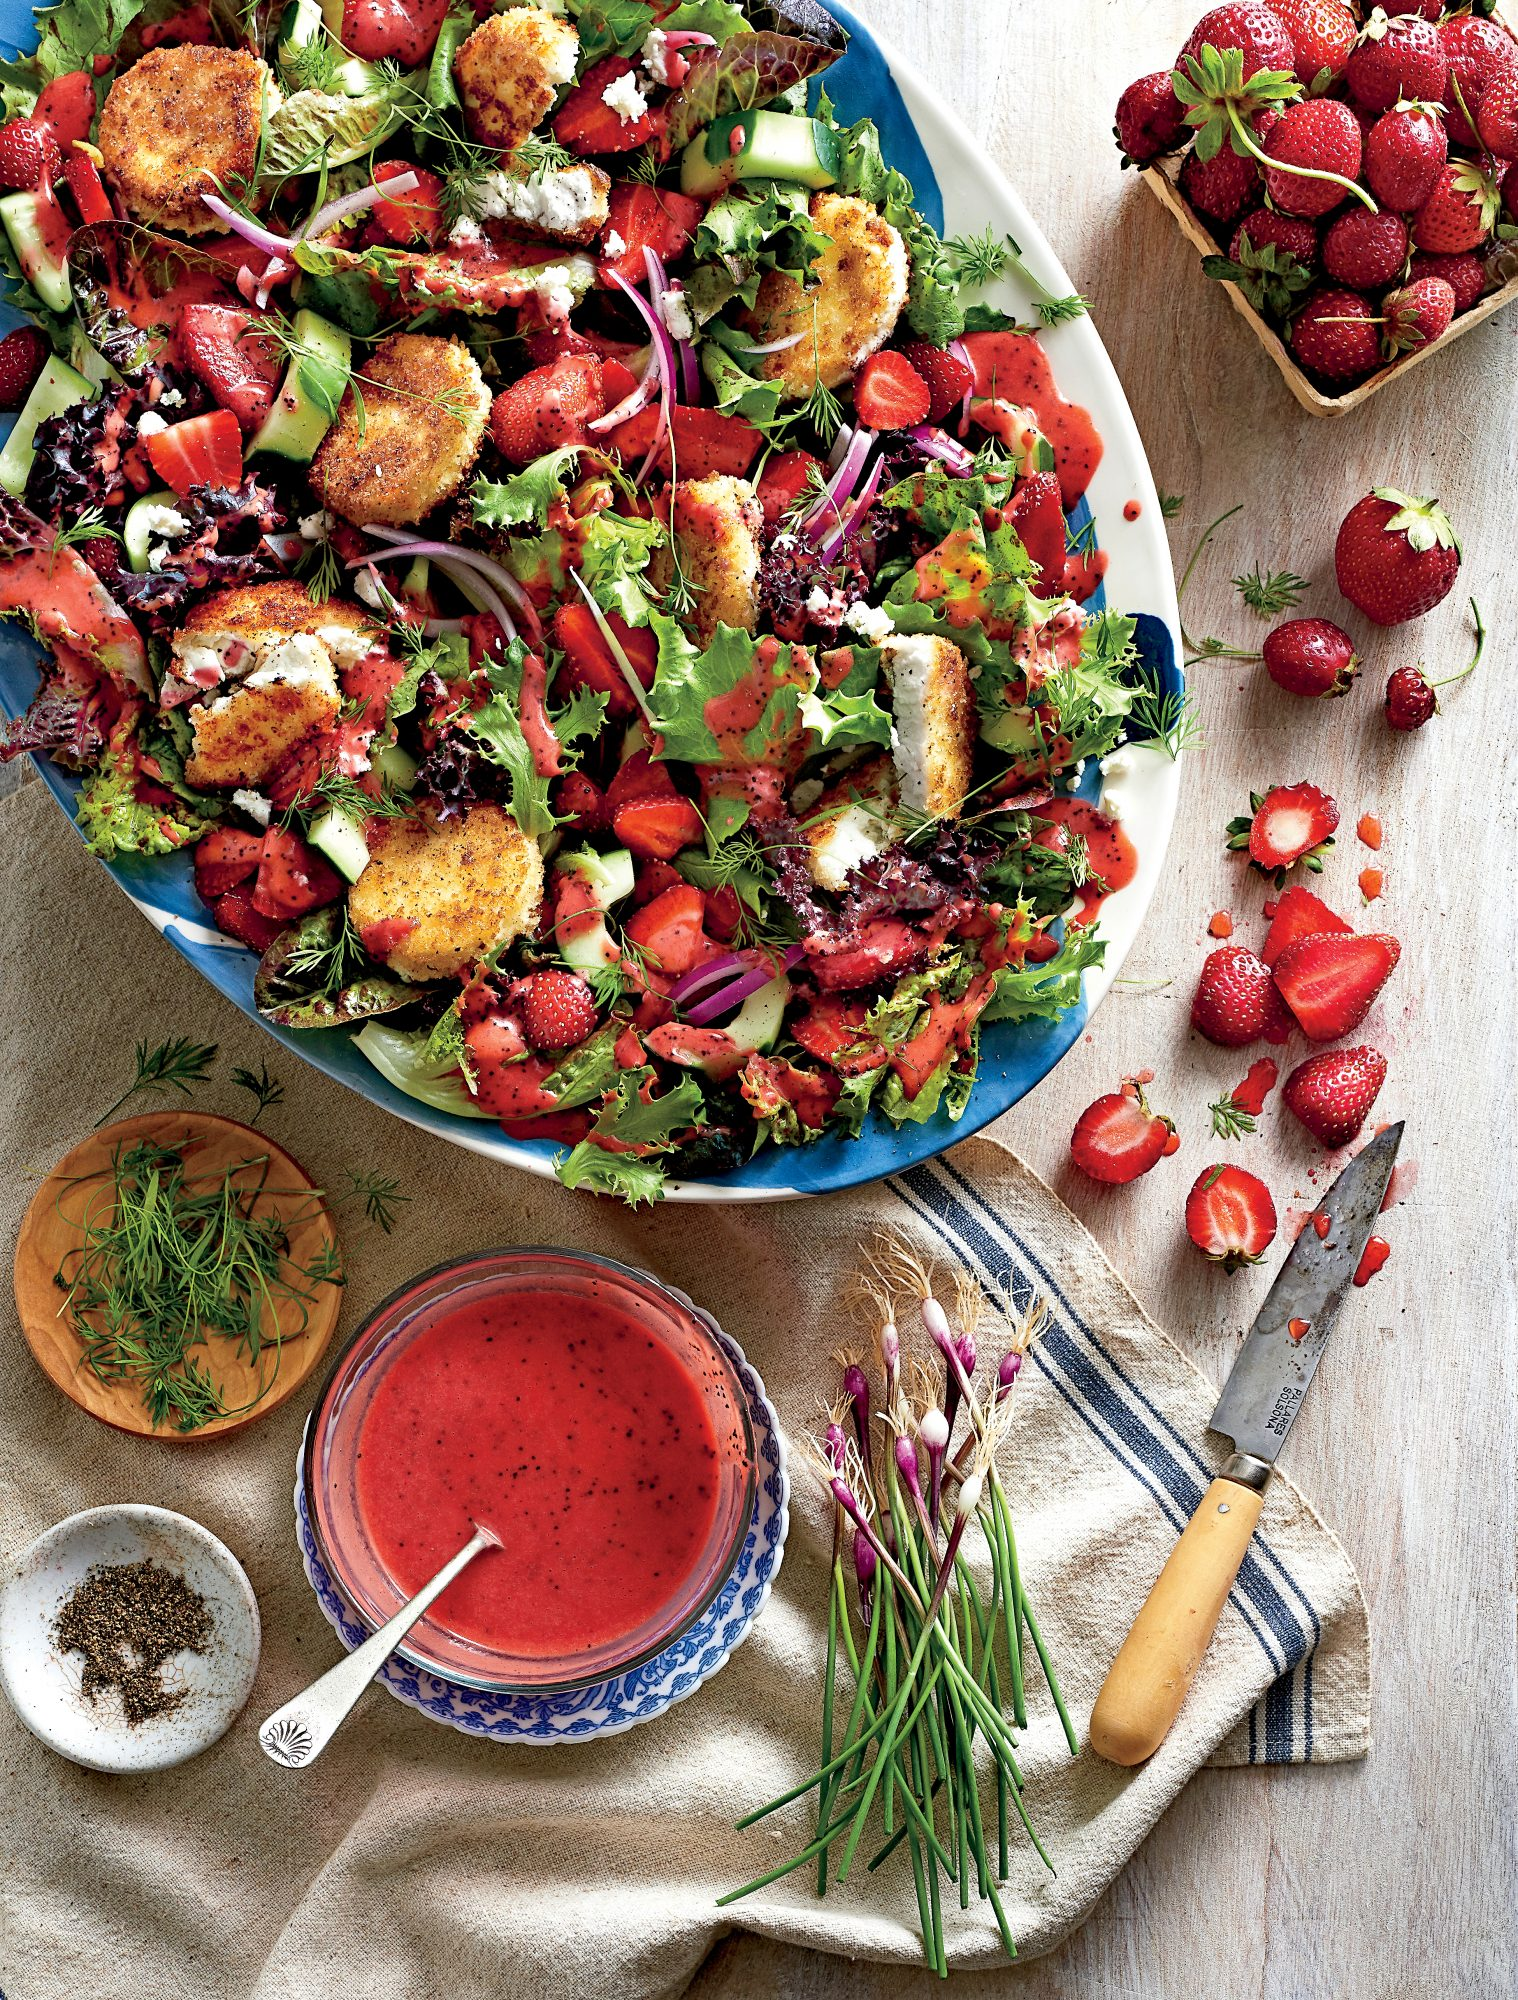 Strawberry Salad with Warm Goat Cheese Croutons